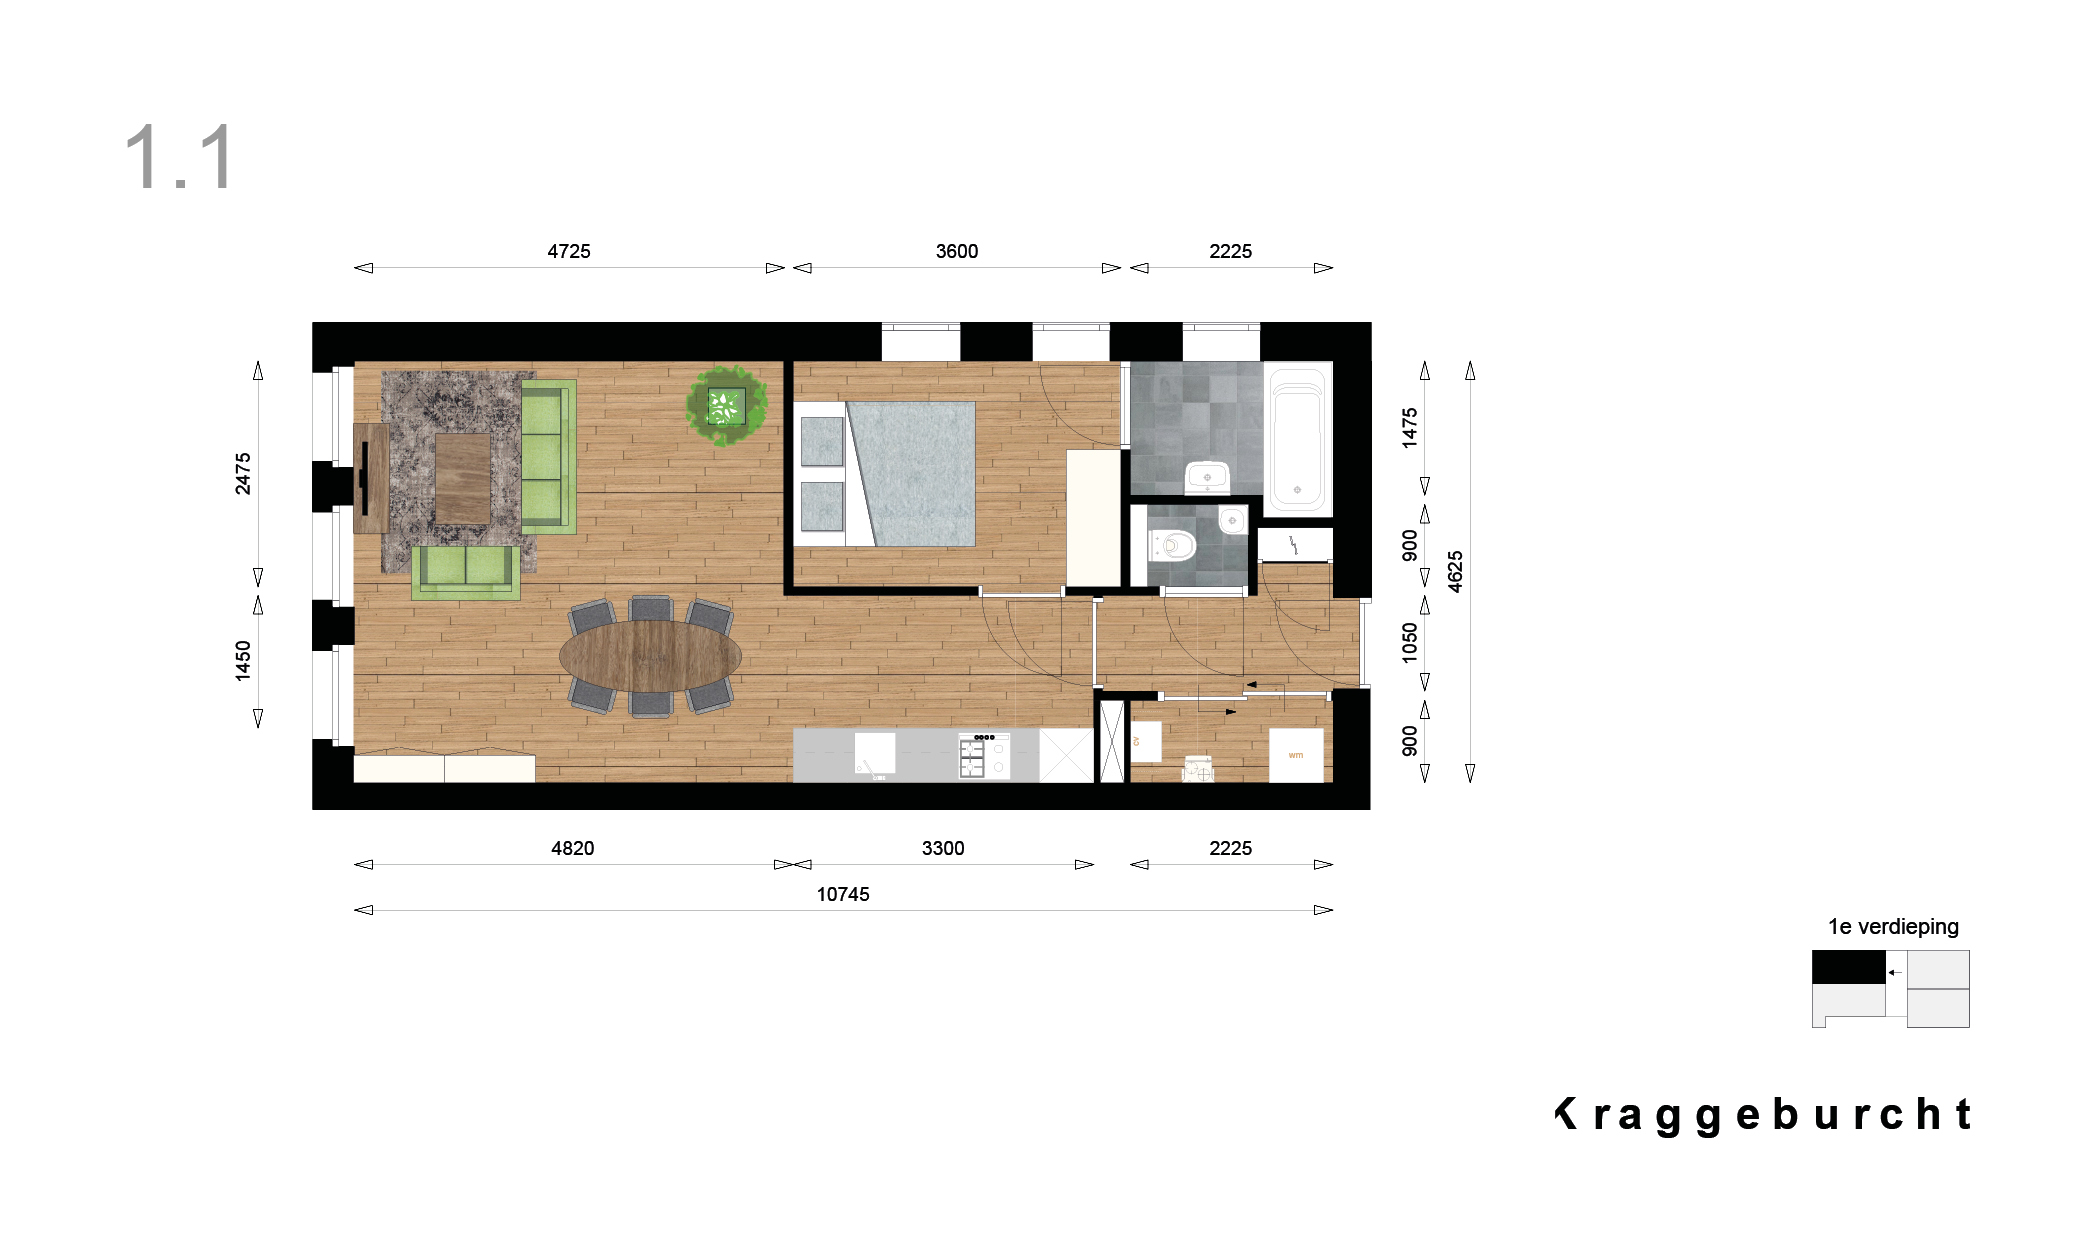 kraggeburcht-appartement-type-large5